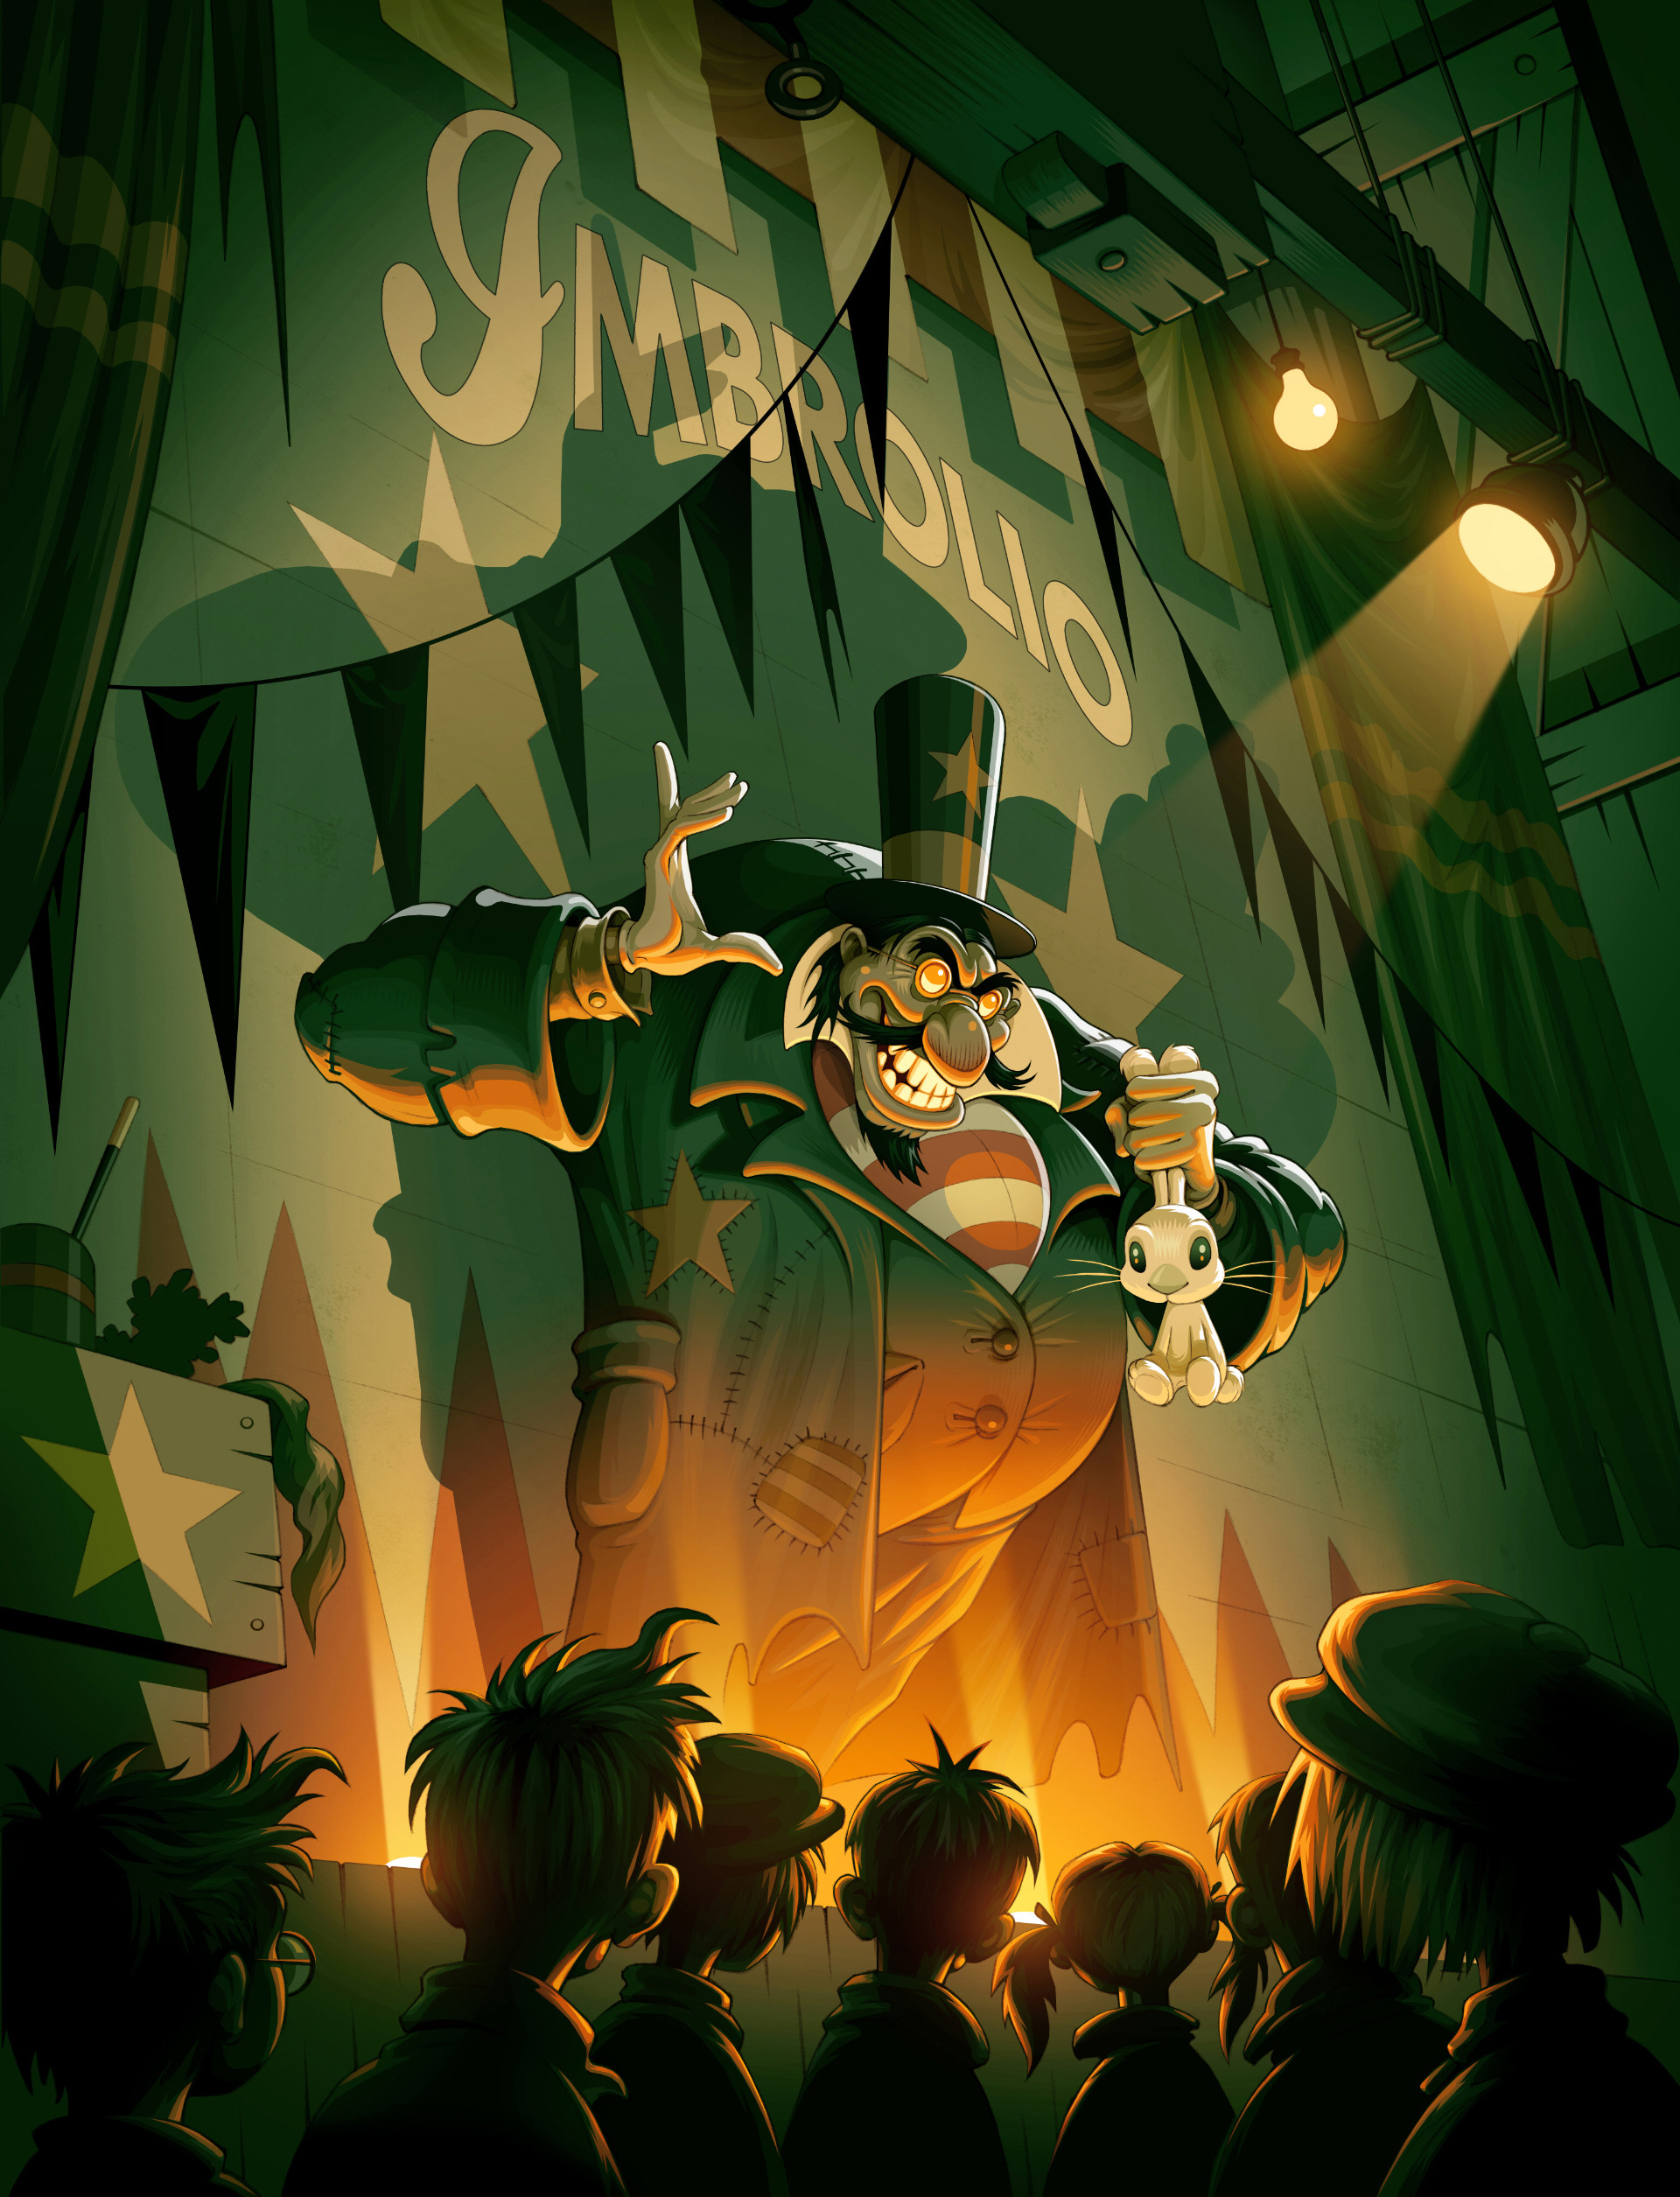 Escape from Hat book illustration